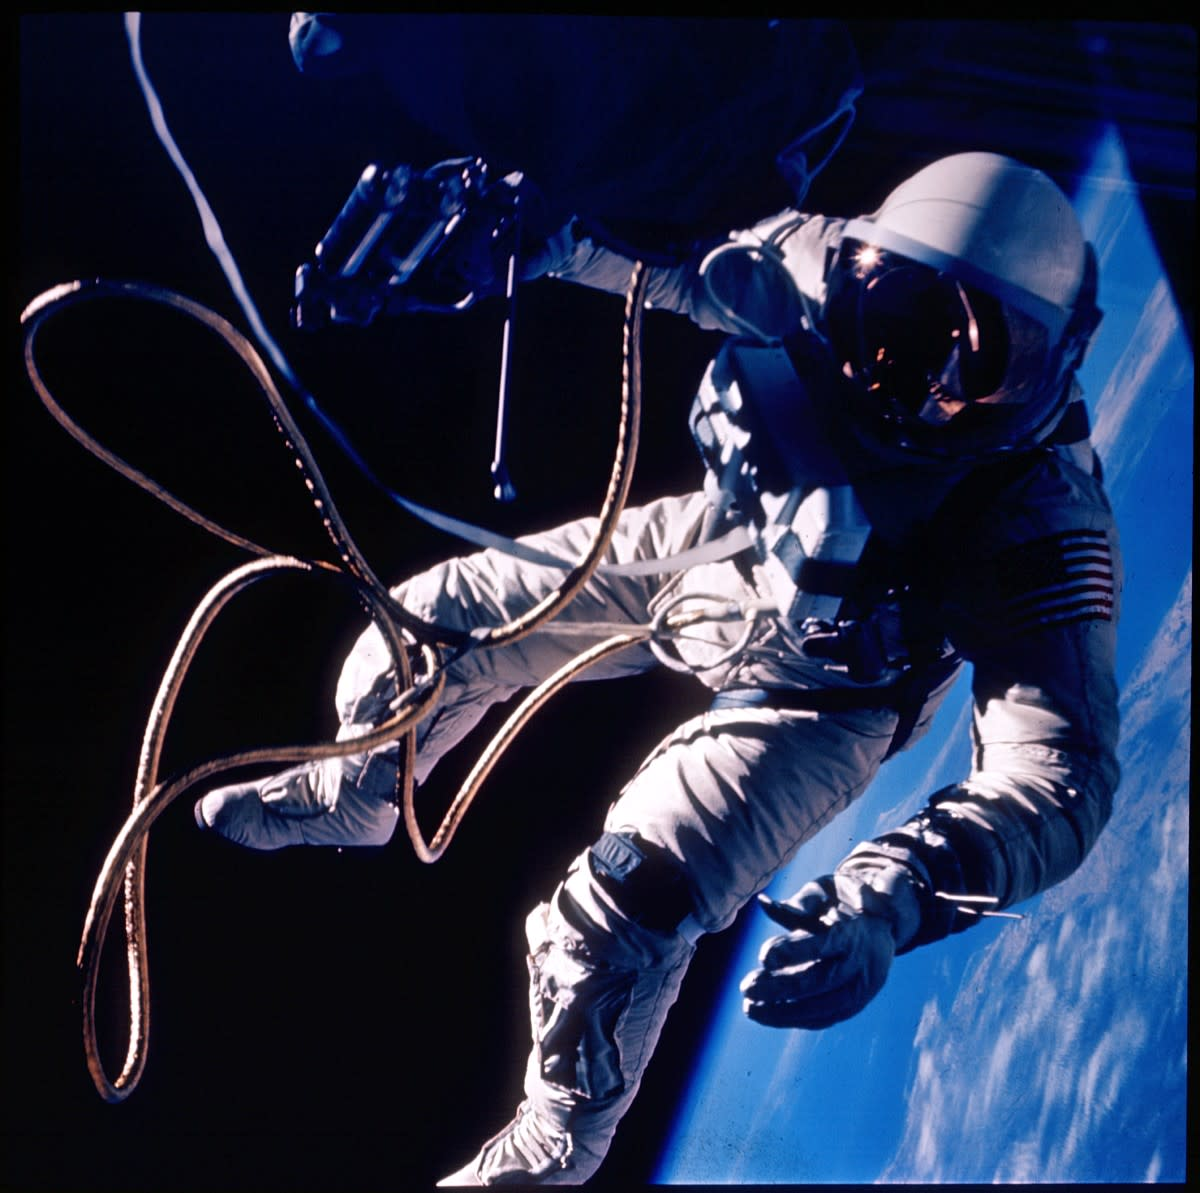 One of the iconic images of the Space Age - Astronaut Ed White floating in space on America's first spacewalk. Photo courtesy of NASA.